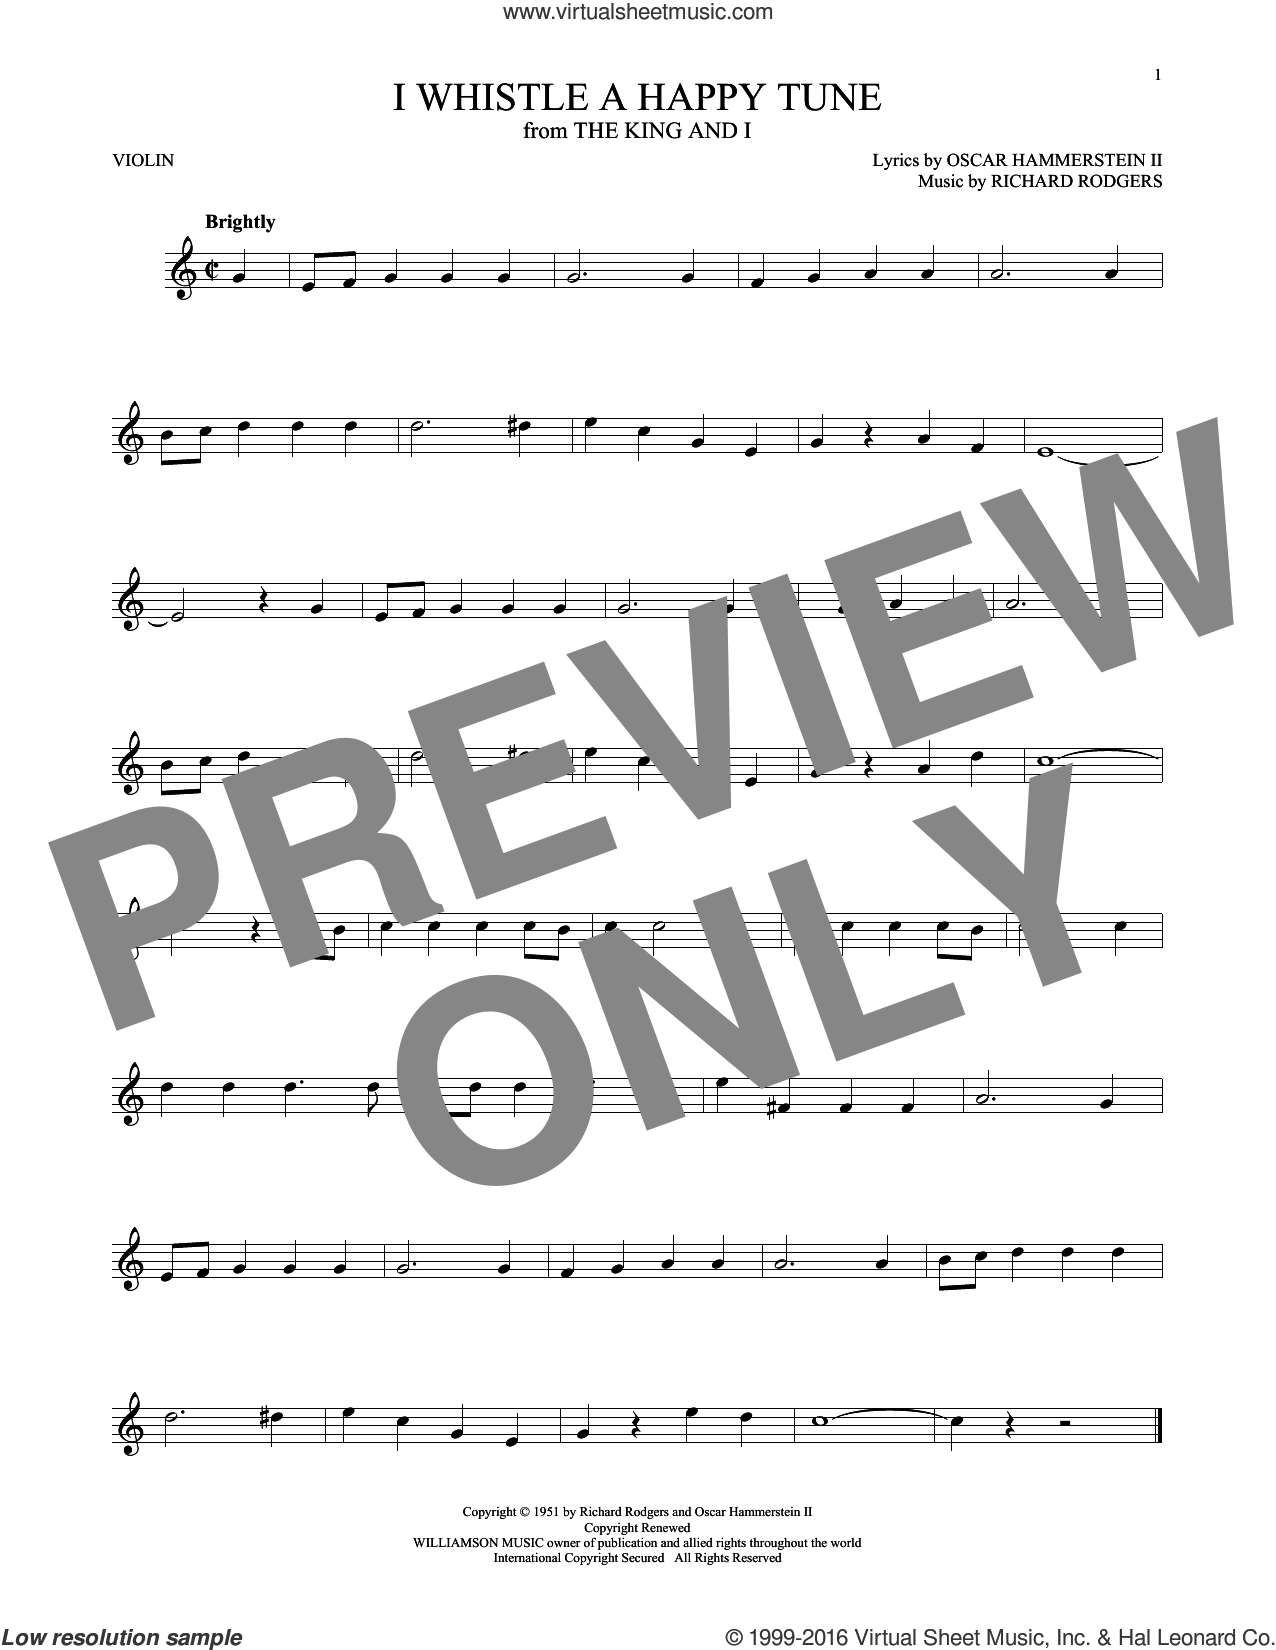 I Whistle A Happy Tune sheet music for violin solo by Richard Rodgers, Oscar II Hammerstein and Rodgers & Hammerstein, intermediate skill level